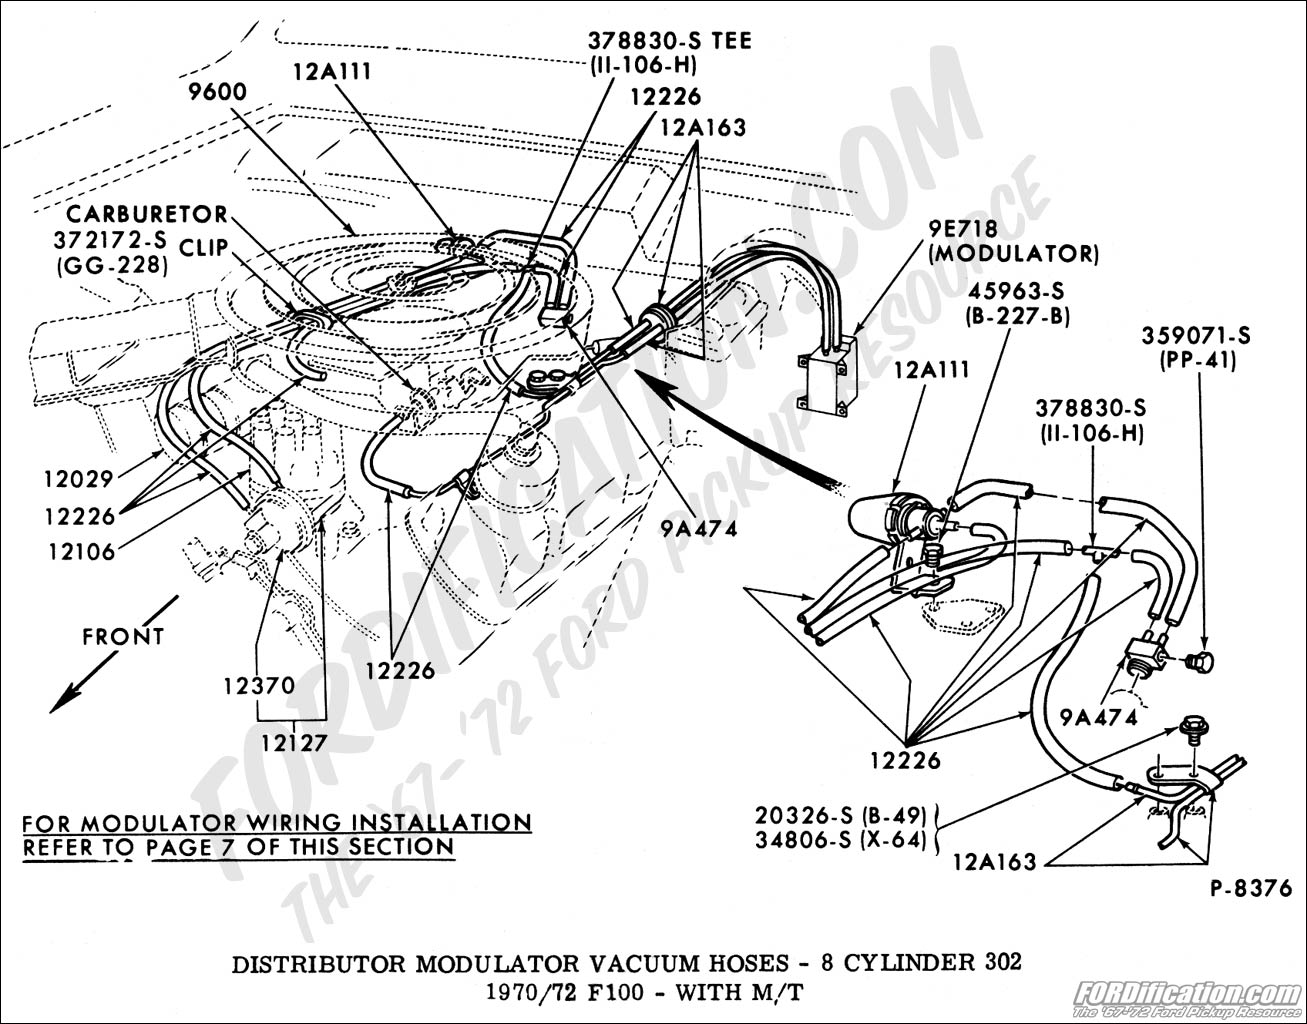 1d60y 1995 F150 Trying Install New Fuel Lines Front Tank together with Schematics i likewise 1102dp The 2008 Chevy Silverado Blowermax likewise Ford F 150 Parts Catalog besides Ford Trucks Exhaust Systems. on f150 exhaust systems diagram